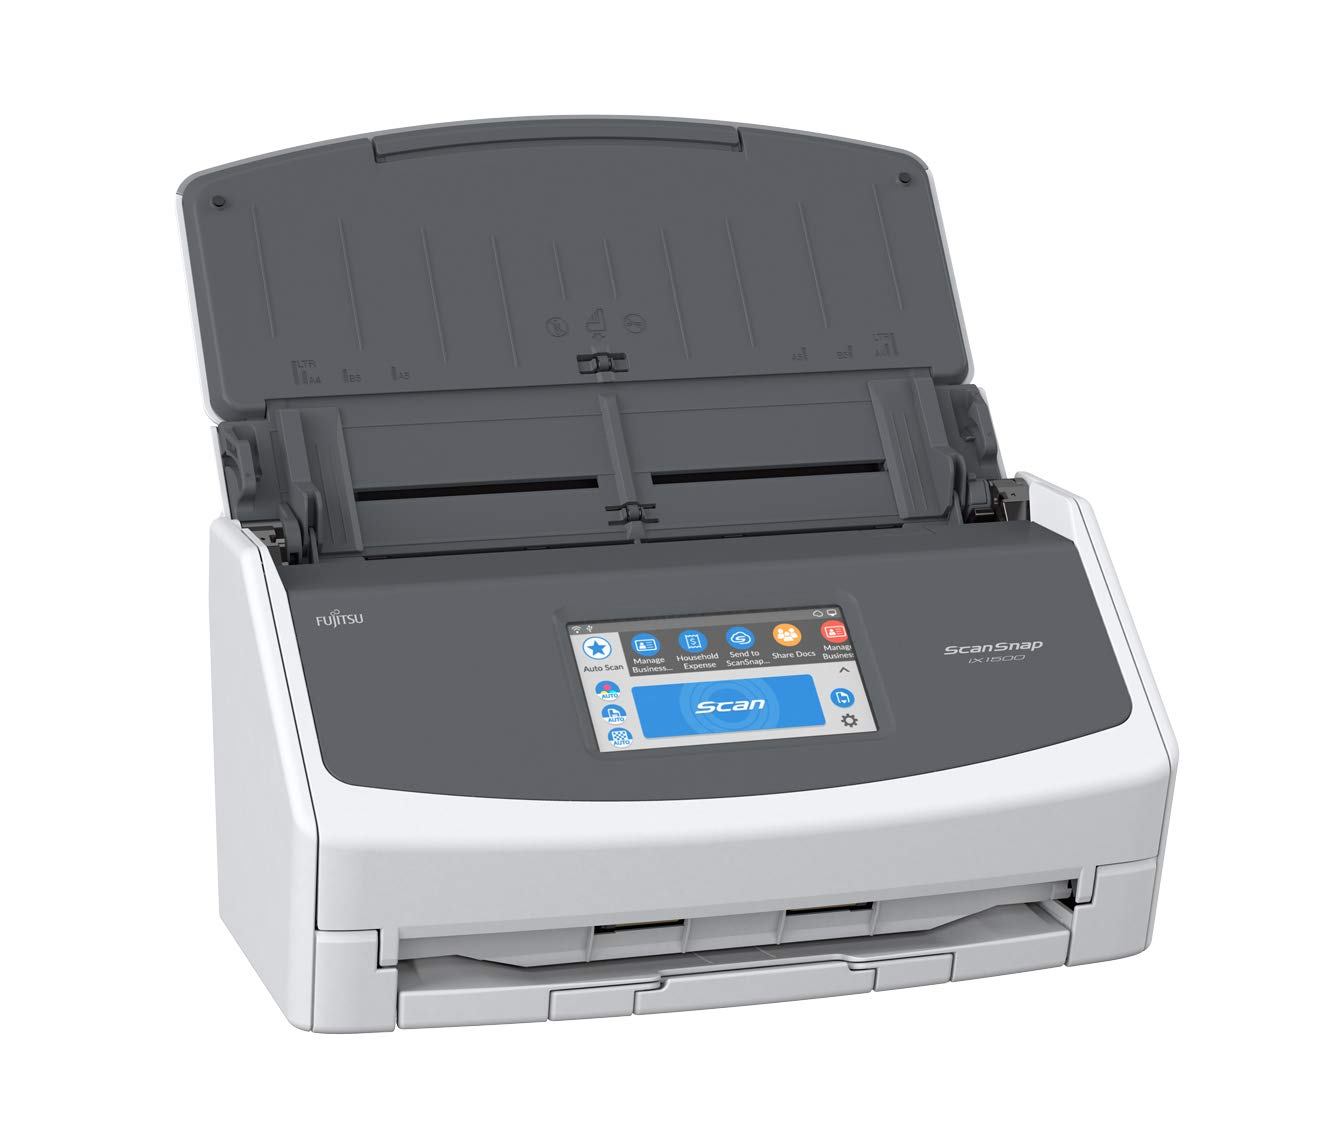 Fujitsu ScanSnap iX1500 Color Duplex Document Scanner with Touch Screen for Mac and PC, White/Gray [NEW MODEL]